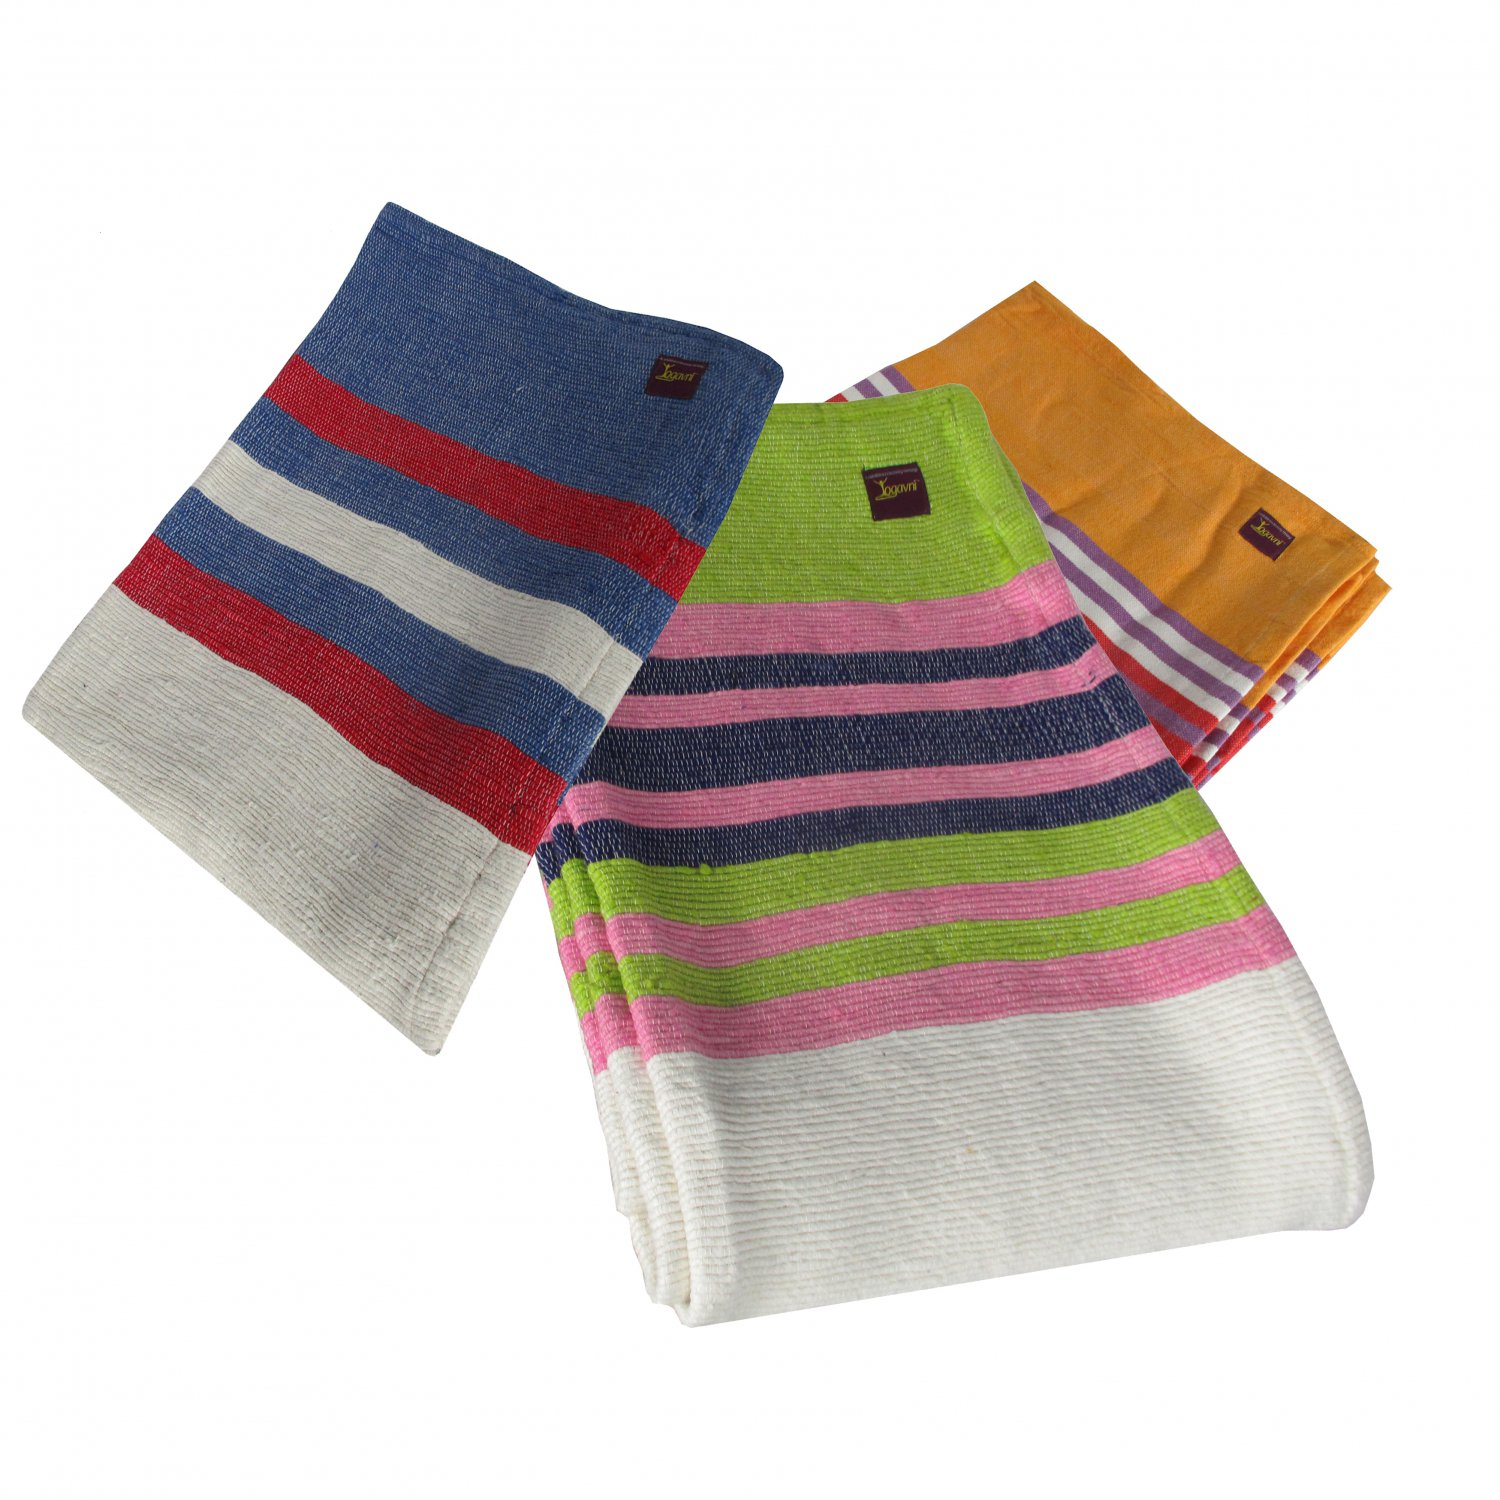 Deluxe Striped Soft and Pure Cotton Yoga Blanket - Available as Assorted Colors Only